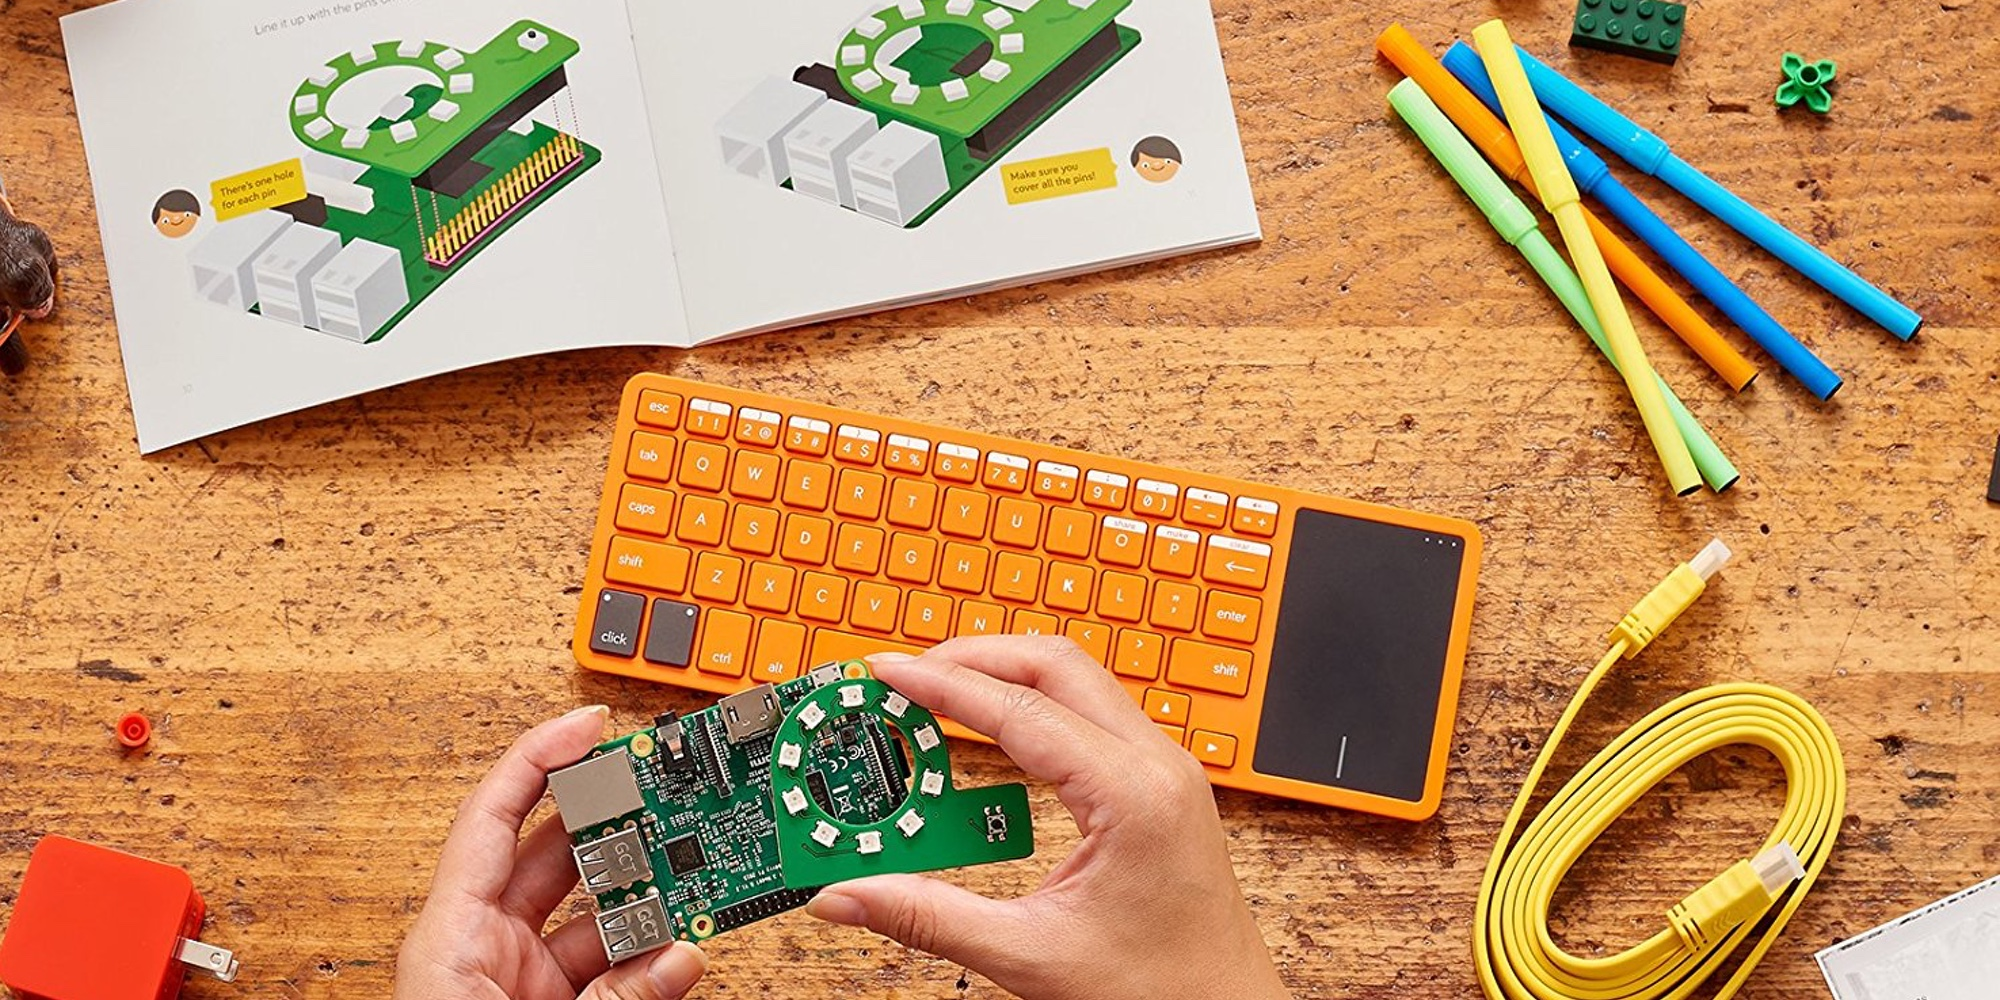 Teach your child to code with the Kano Computer Kit for $100 (Reg. $120)